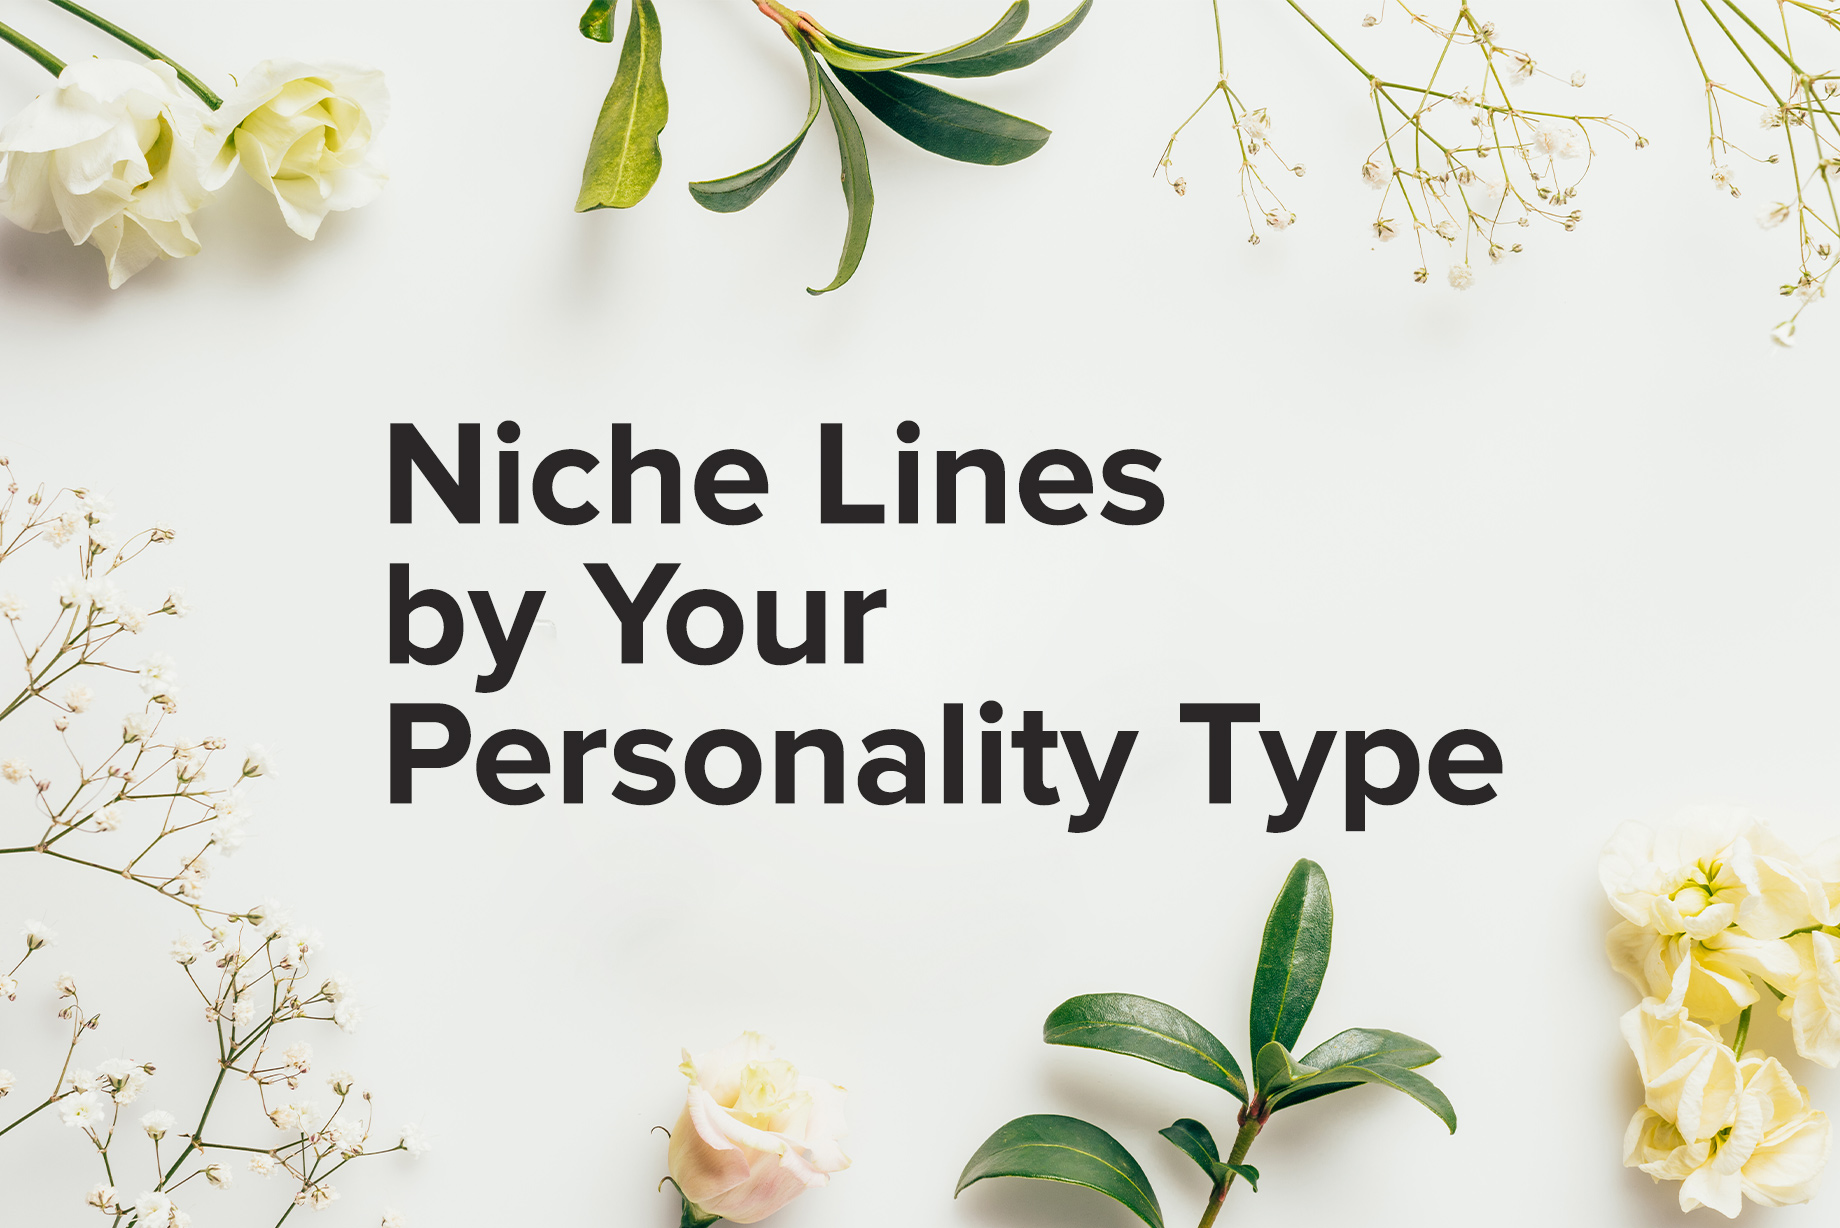 Niche Lines by Personality Type